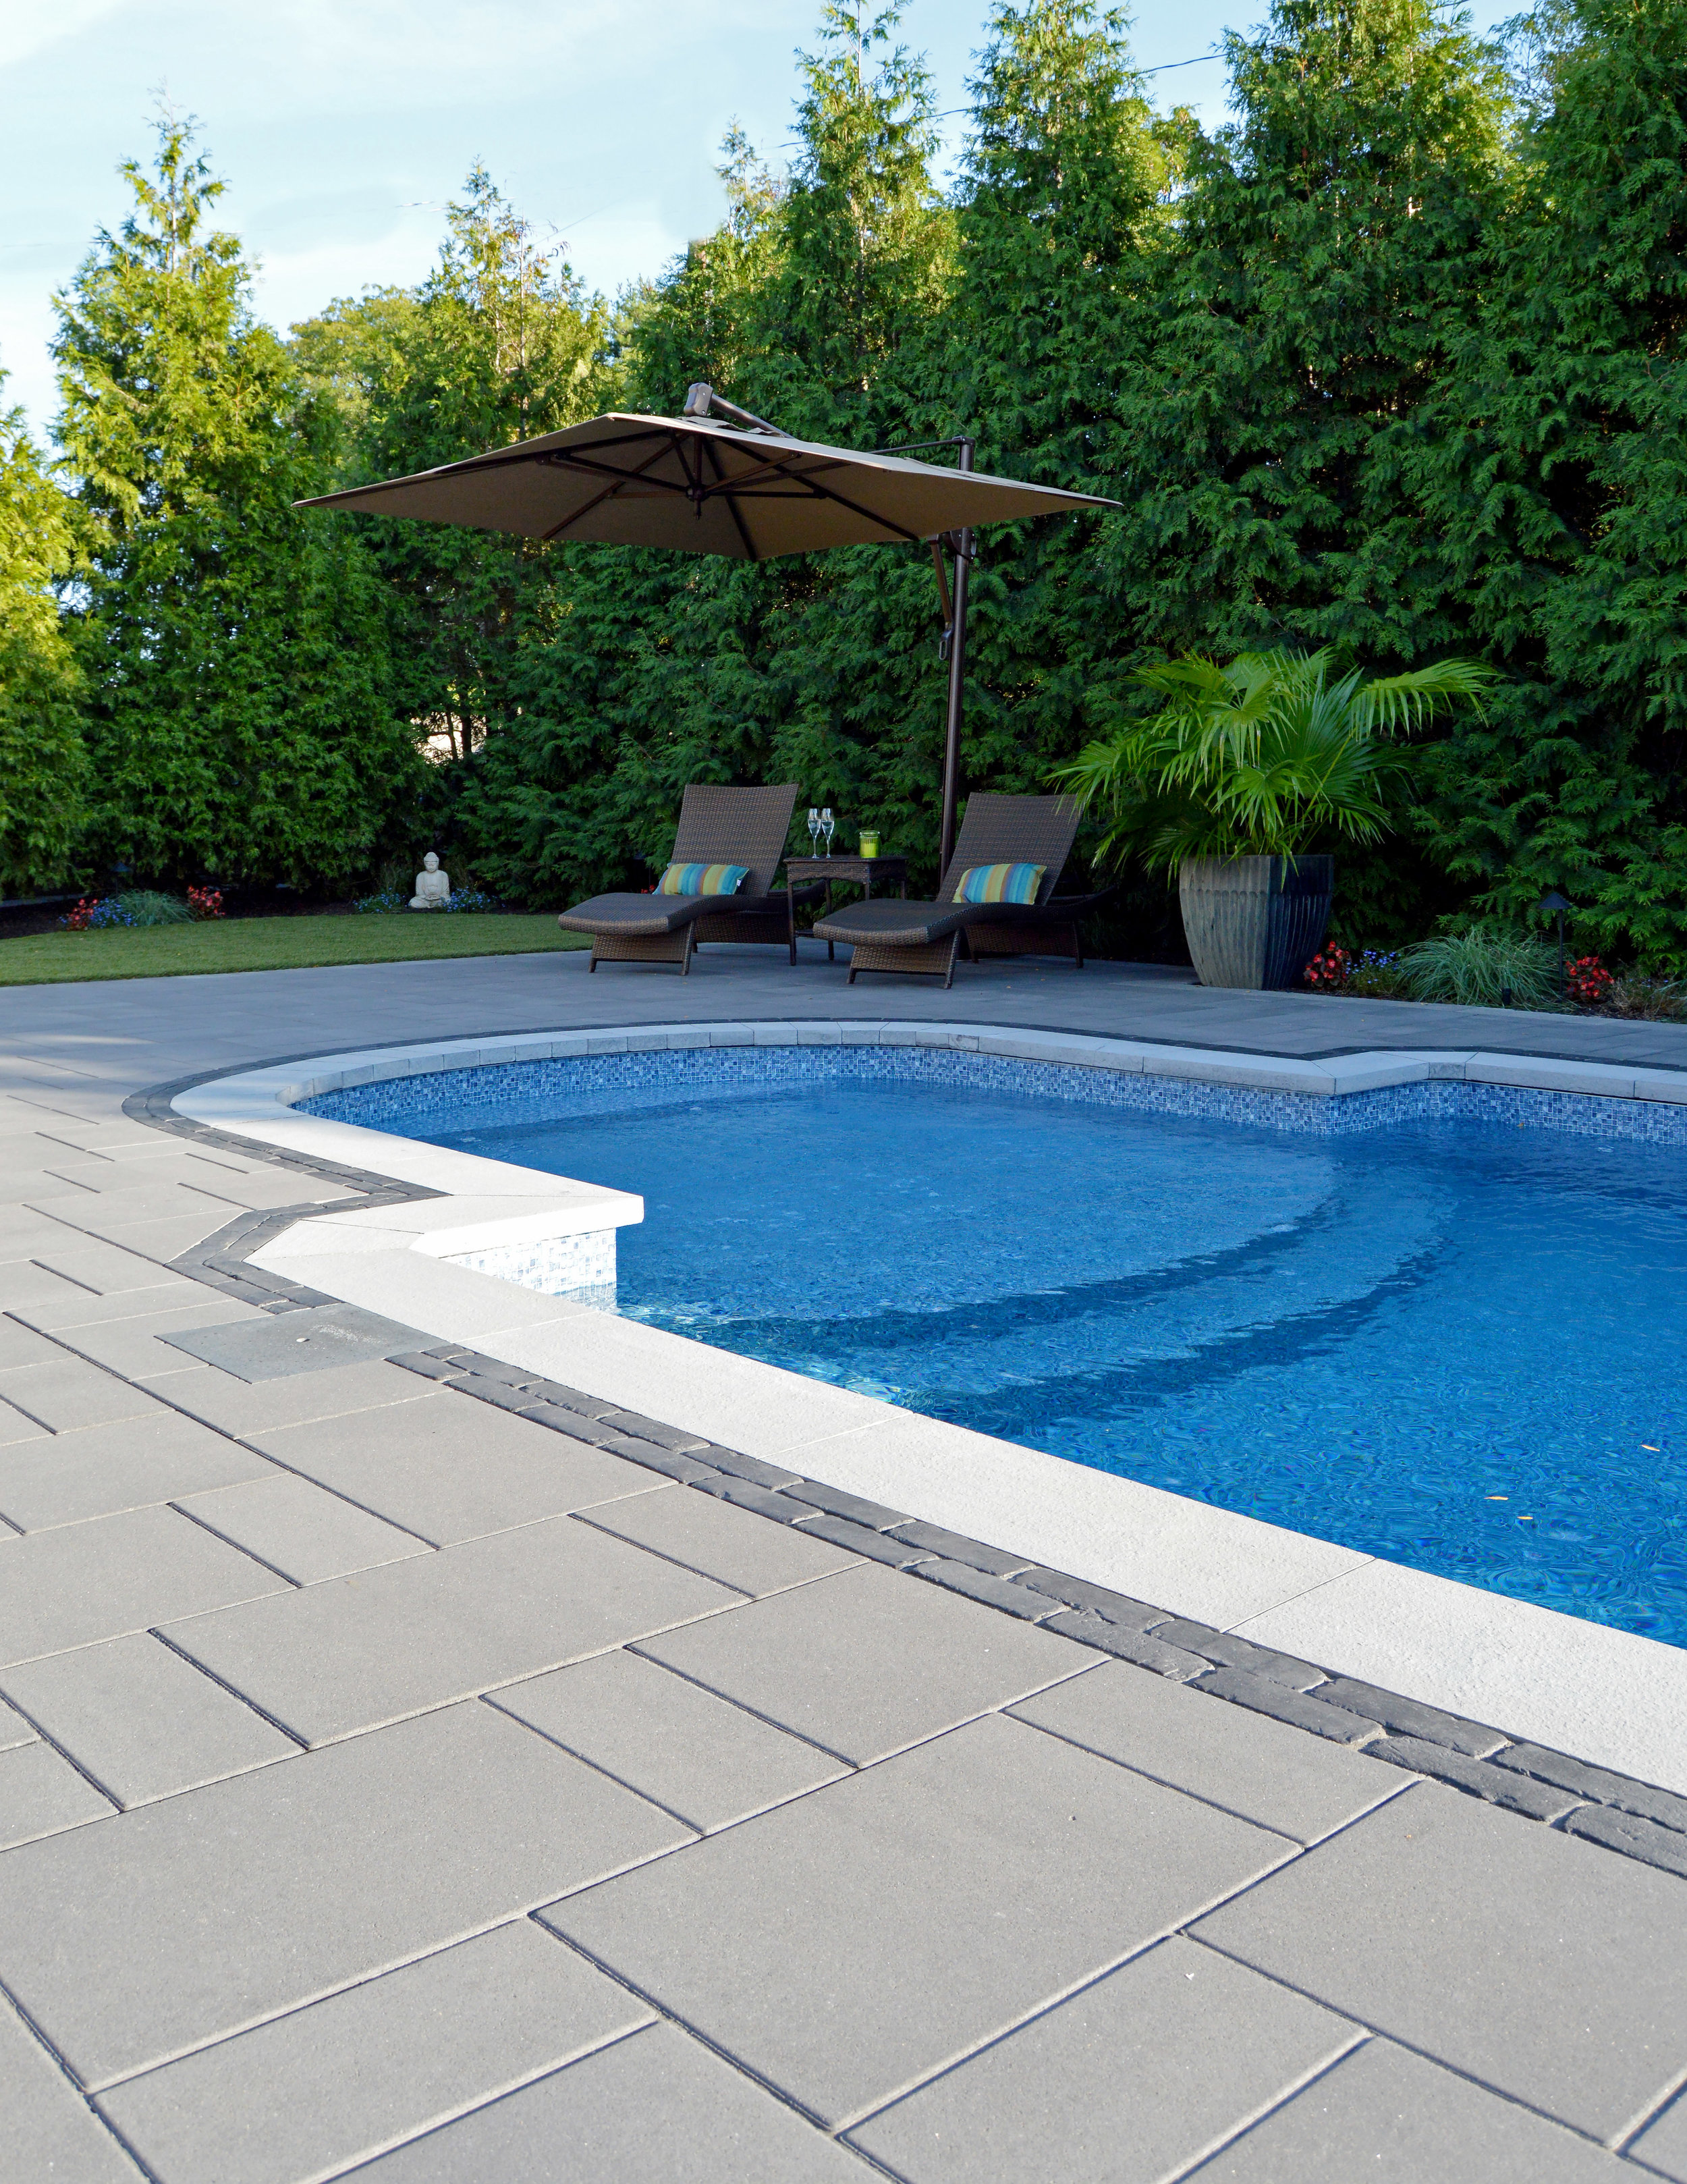 hicksville, NY swimming pool and patio landscape design project